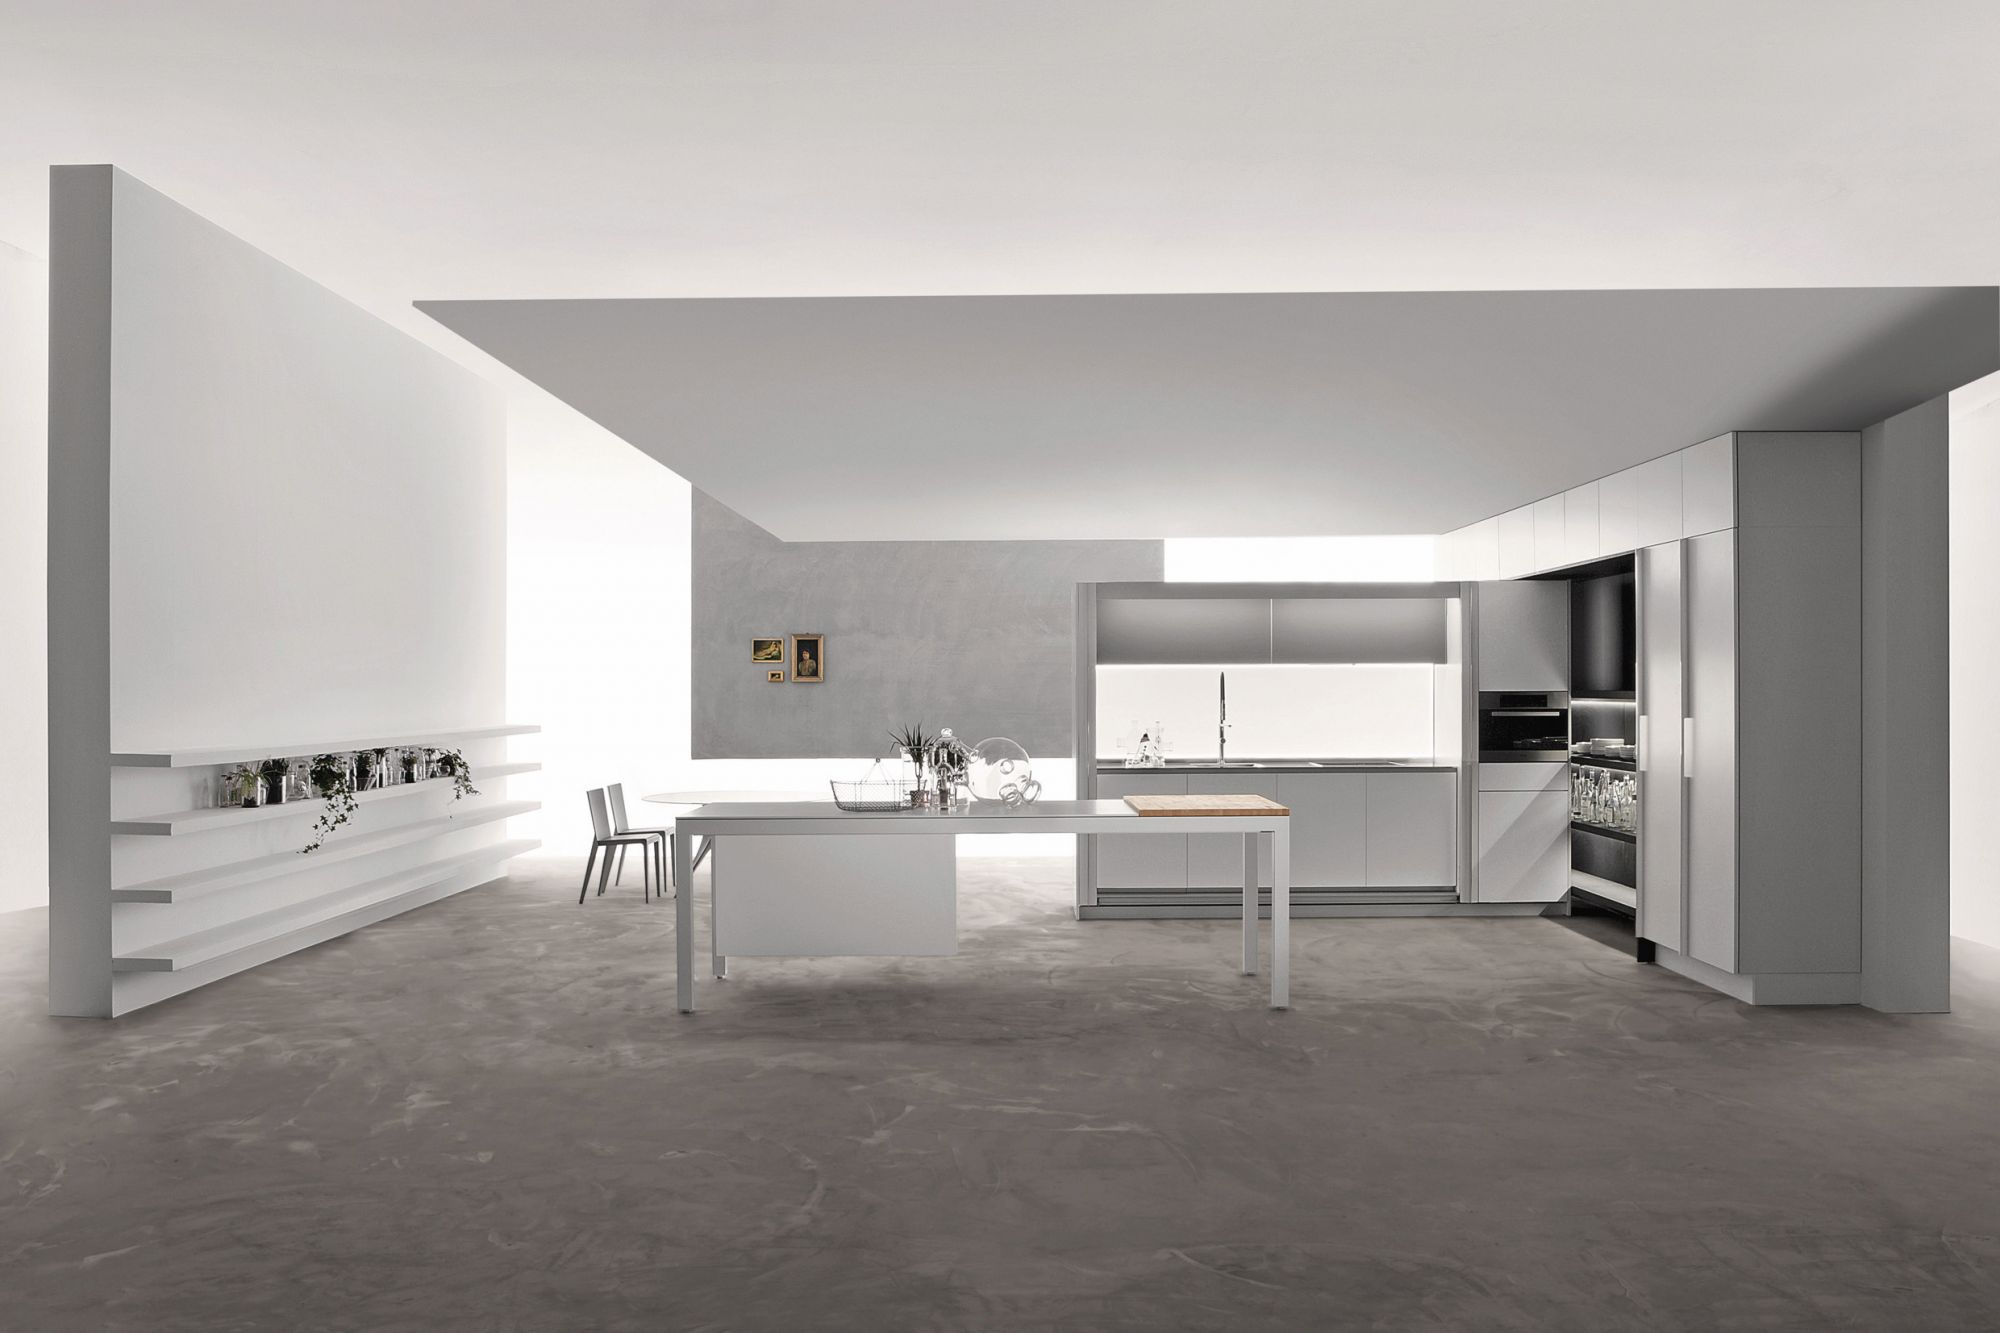 The Molteni&C | Dada Tivali kitchen system from P5 incorporates sliding doors that hide your shelves and countertop when the space is not in use